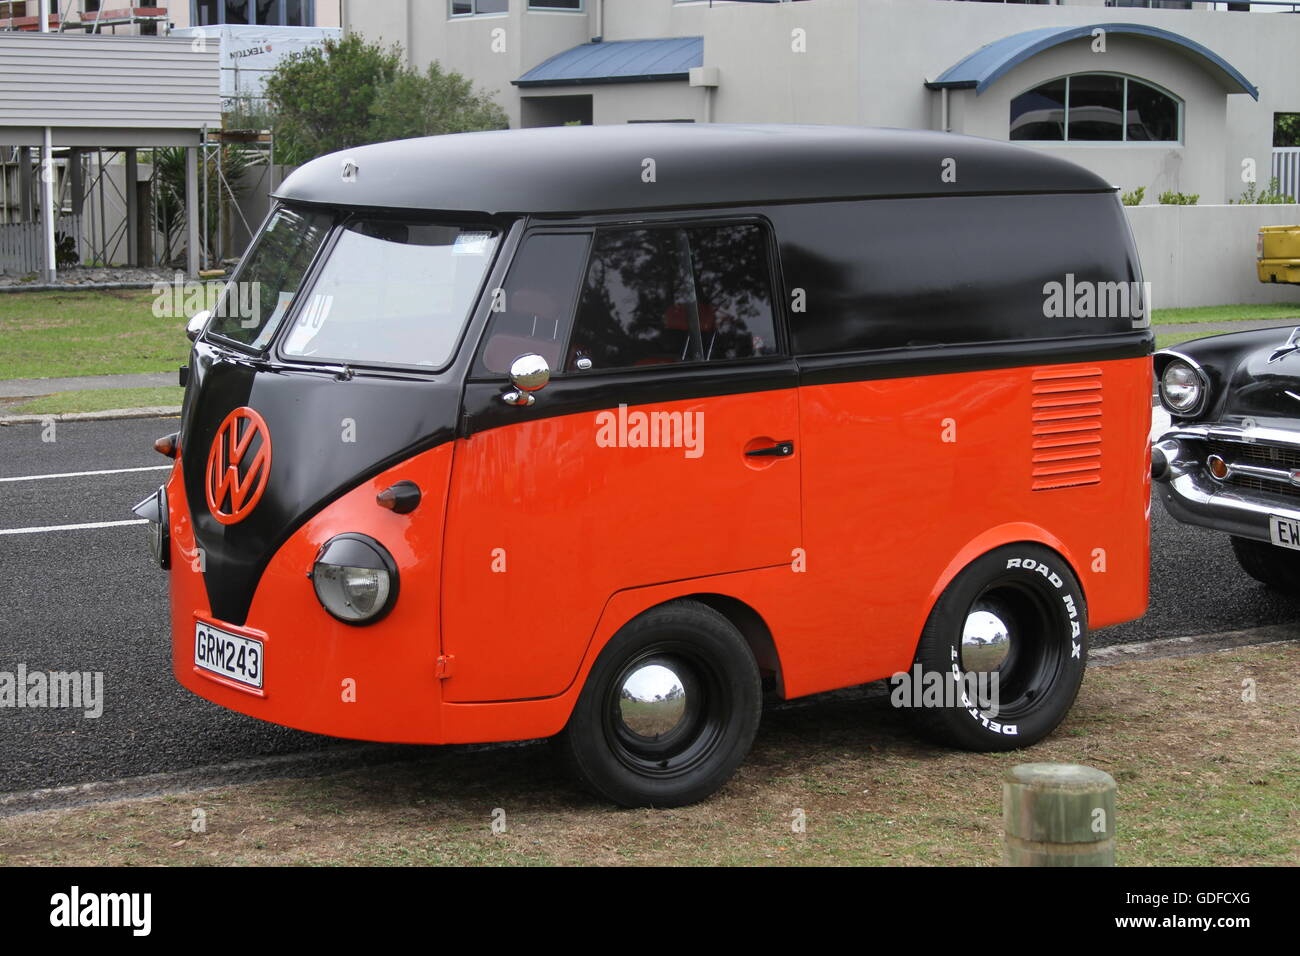 VW van chopped and made smaller - Stock Image